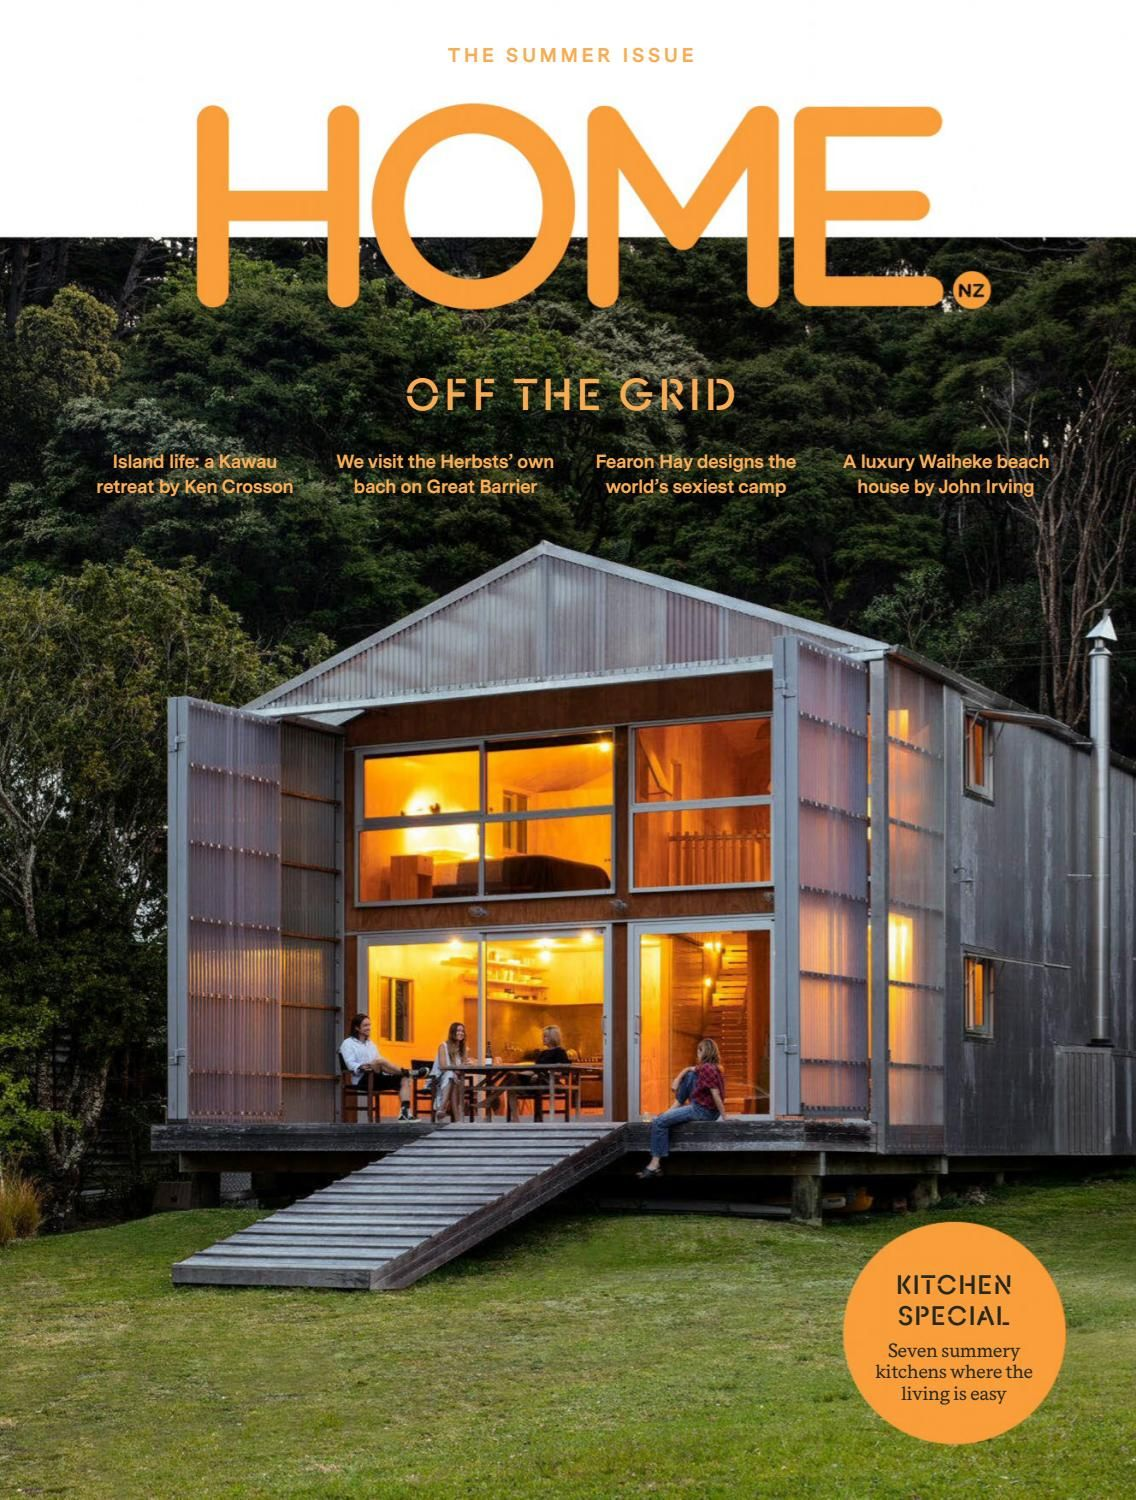 Living In A Box How The Concept Of Tiny Houses Has Changed Over The Years Arch2o Com